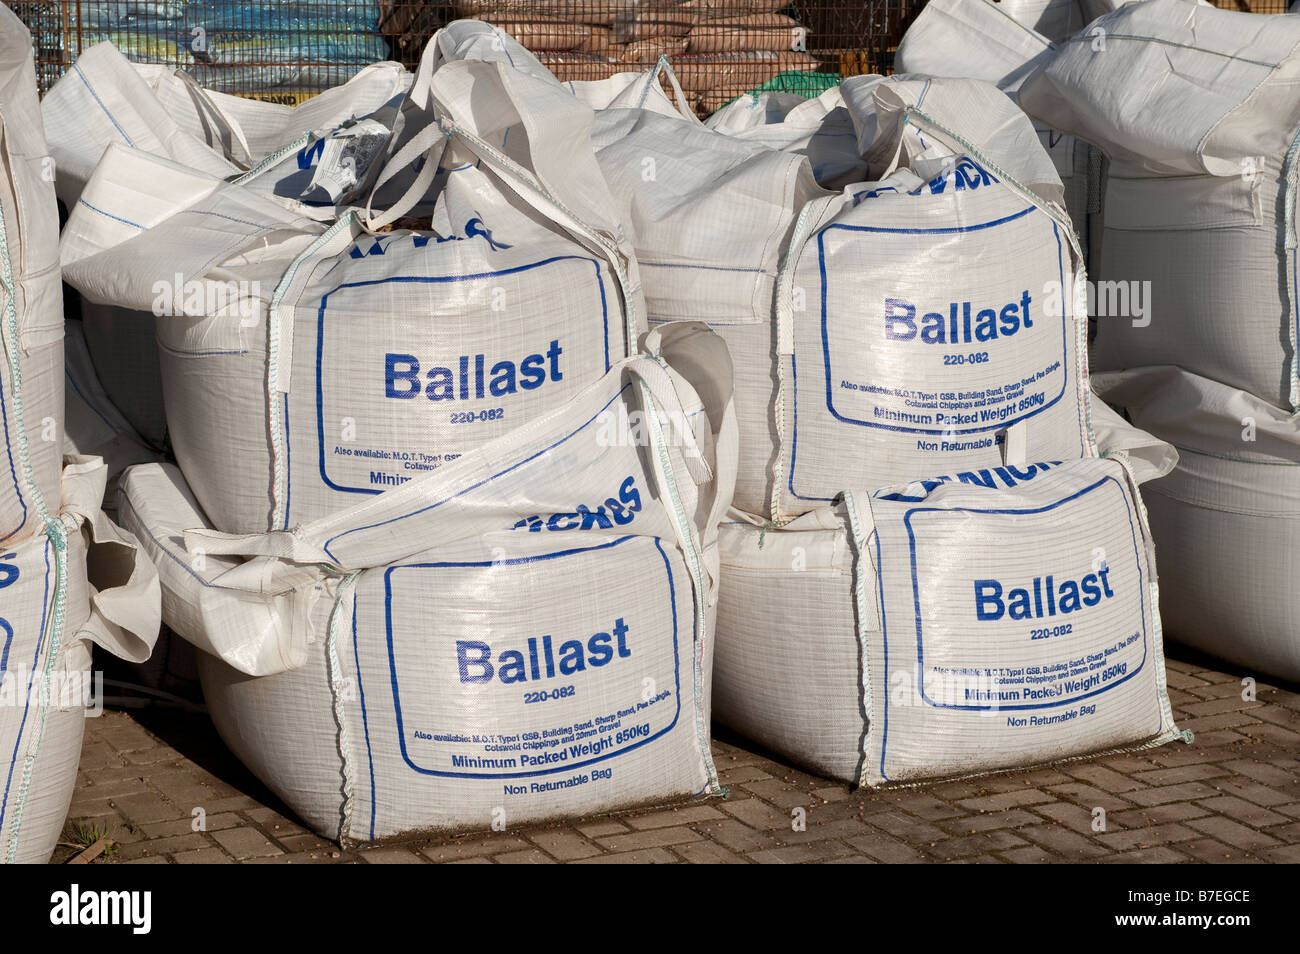 Large sacks filled with ballast - Stock Image